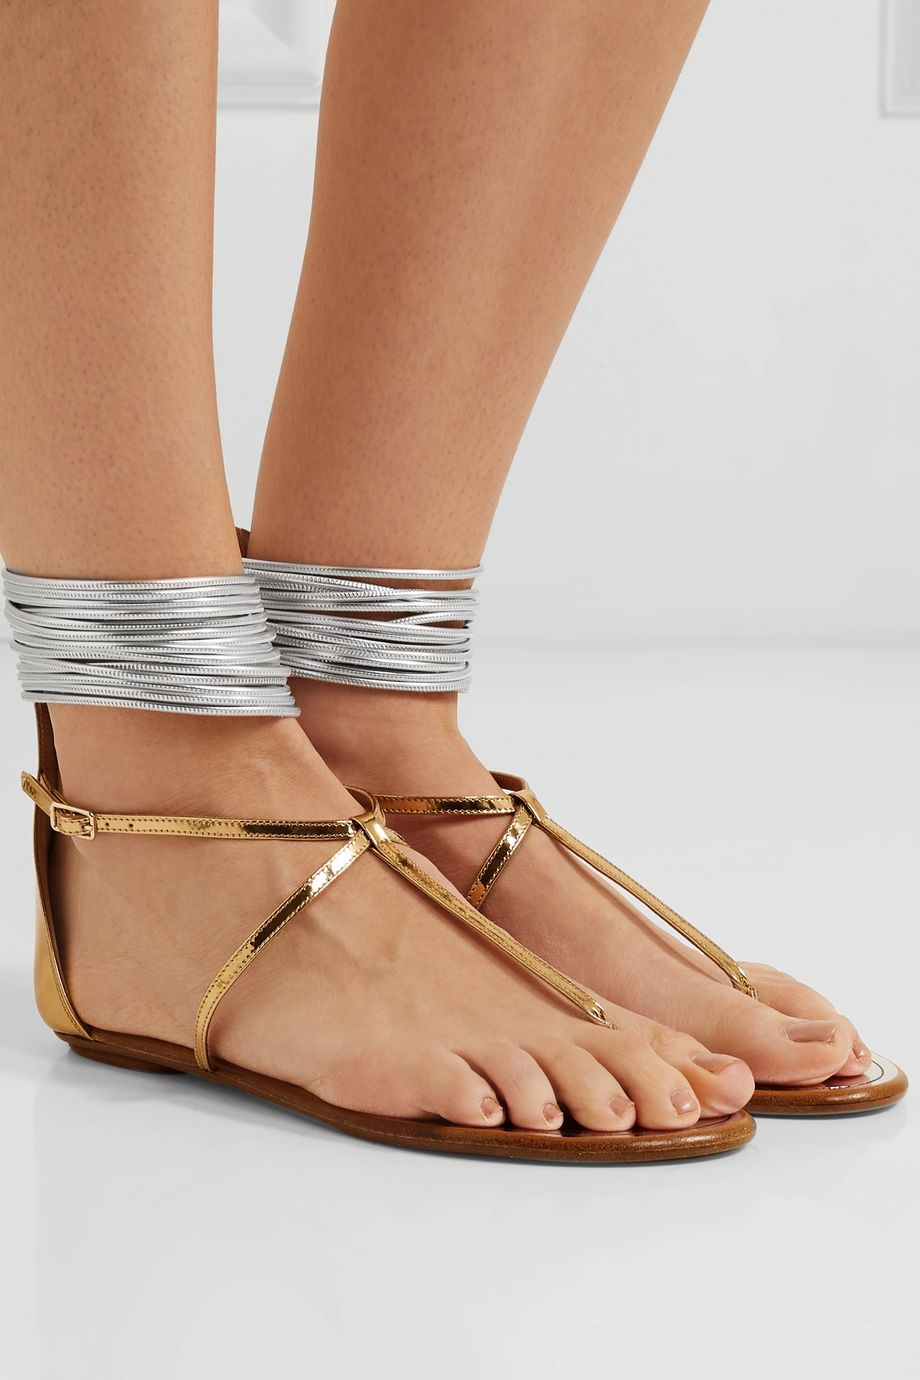 Aquazzura Spin Me Around metallic leather and cord sandals